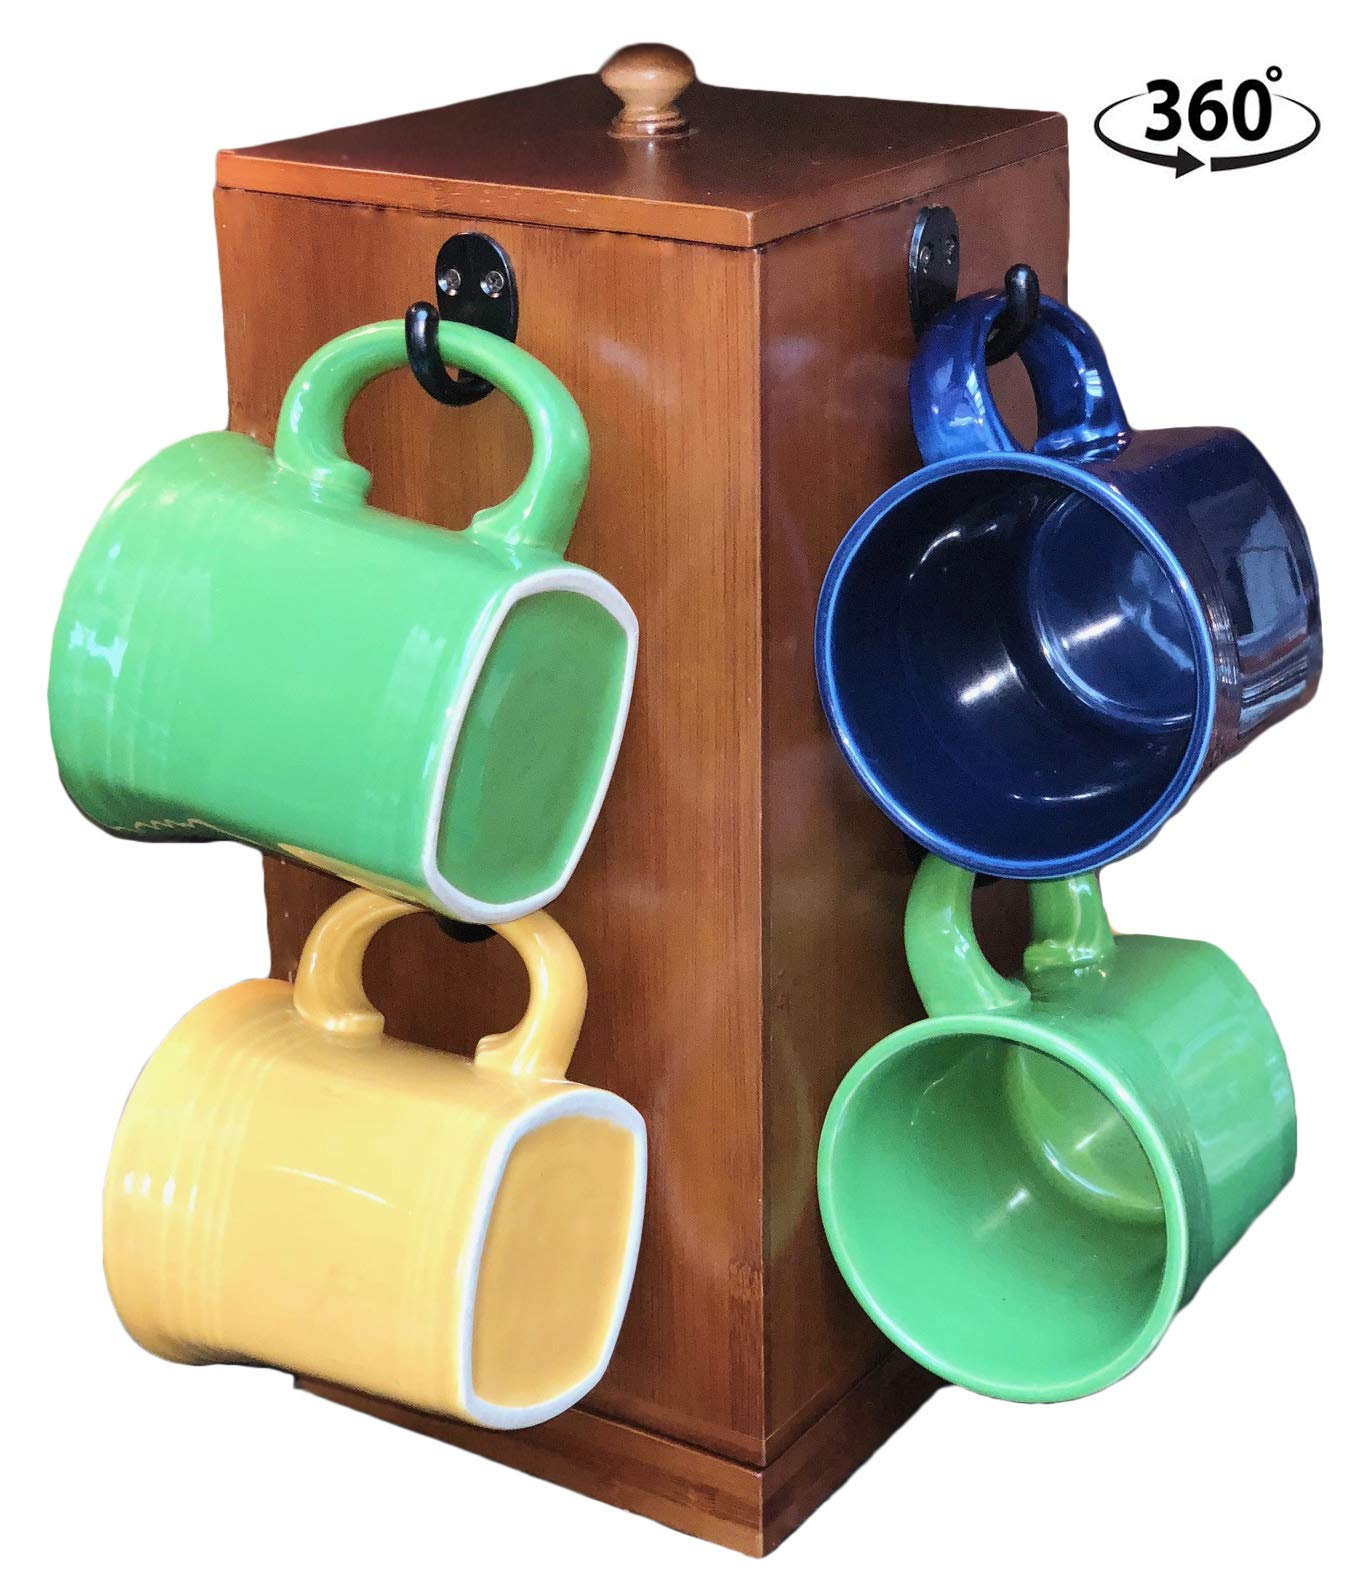 Autumn Alley Bamboo Rotating Coffee Mug Rack with Coffee Pod Storage | Built-in Airtight Kitchen Canister | Eco-Friendly | Timeless Design I Easy Access to Mugs, Coffee Pods | Declutter Counter Top by Autumn Alley